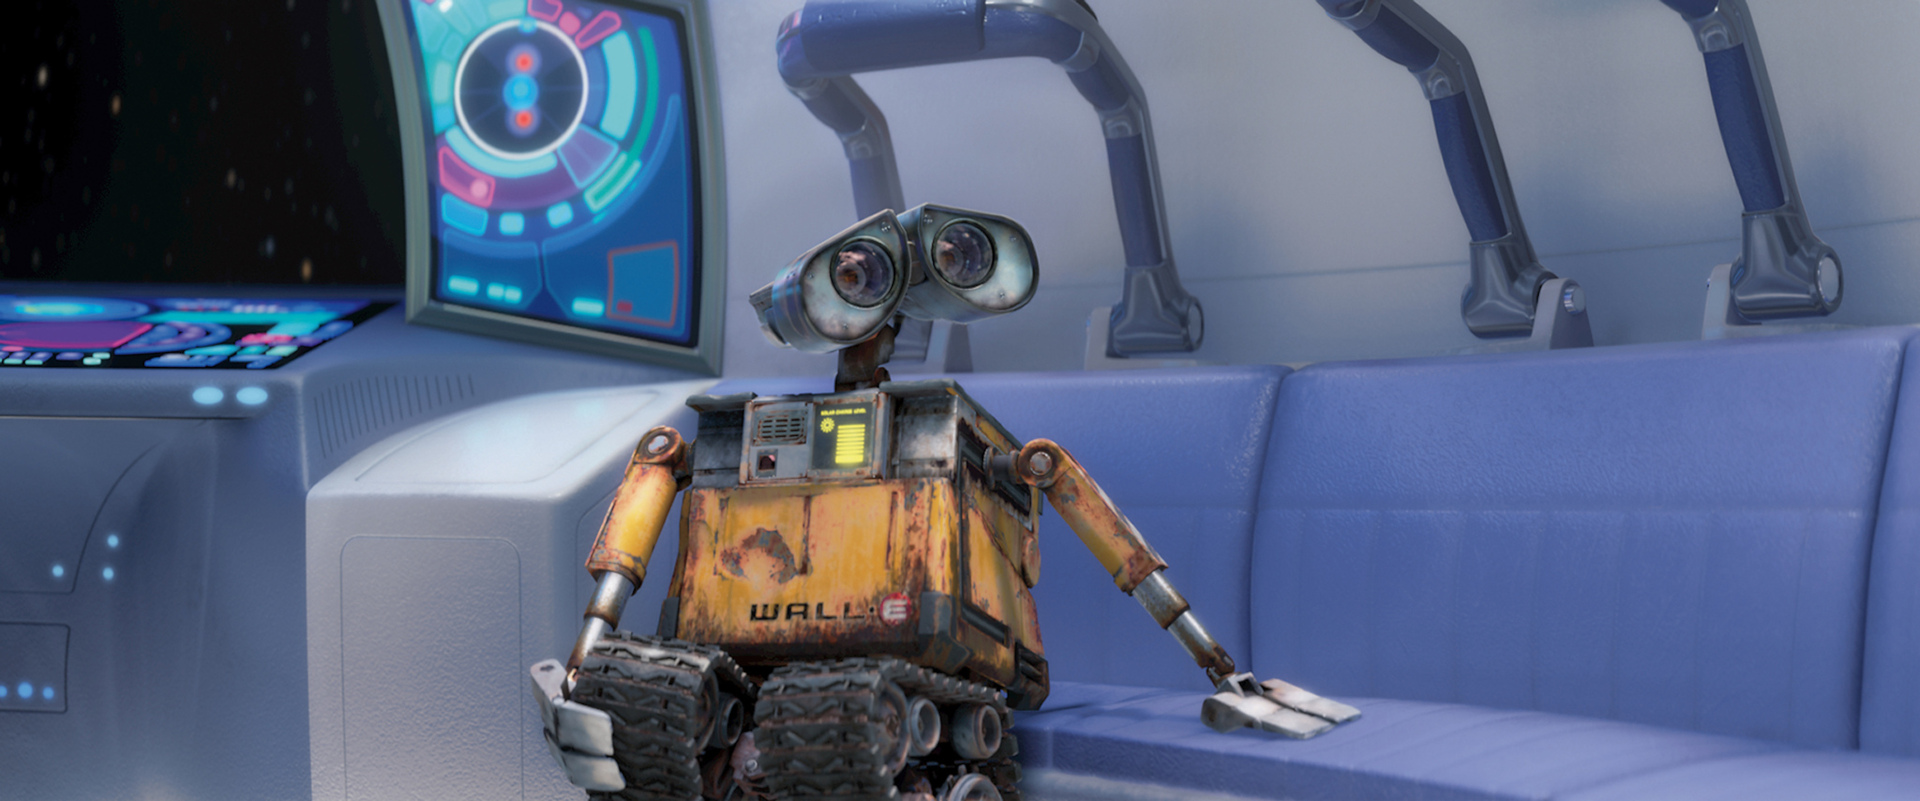 Best animated space movies for kids